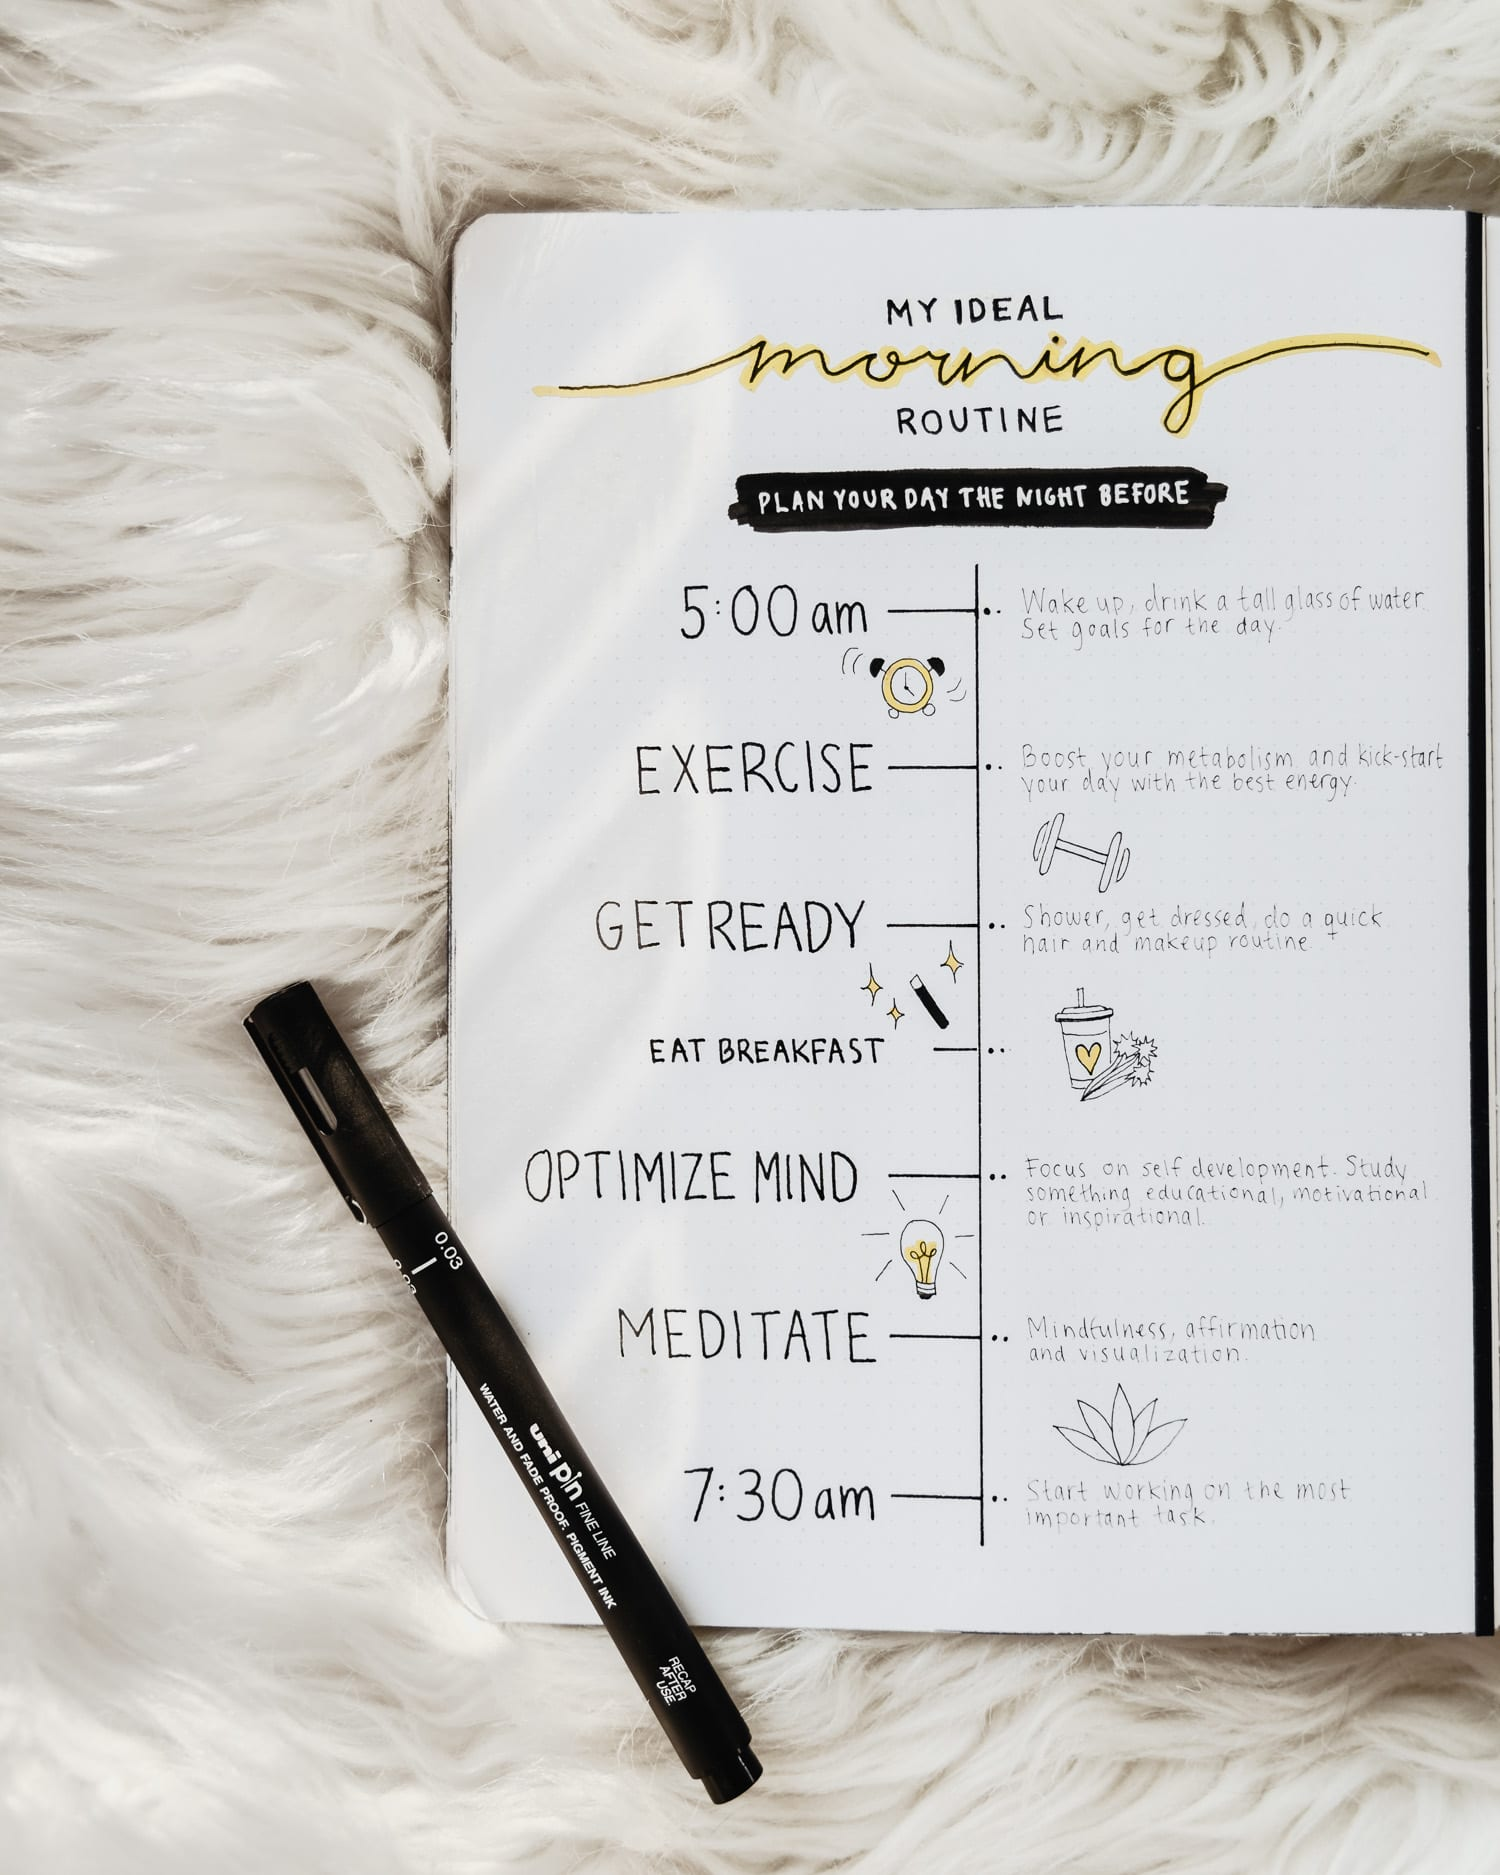 Bullet Journal - My Ideal Morning Routine |Collection Idea